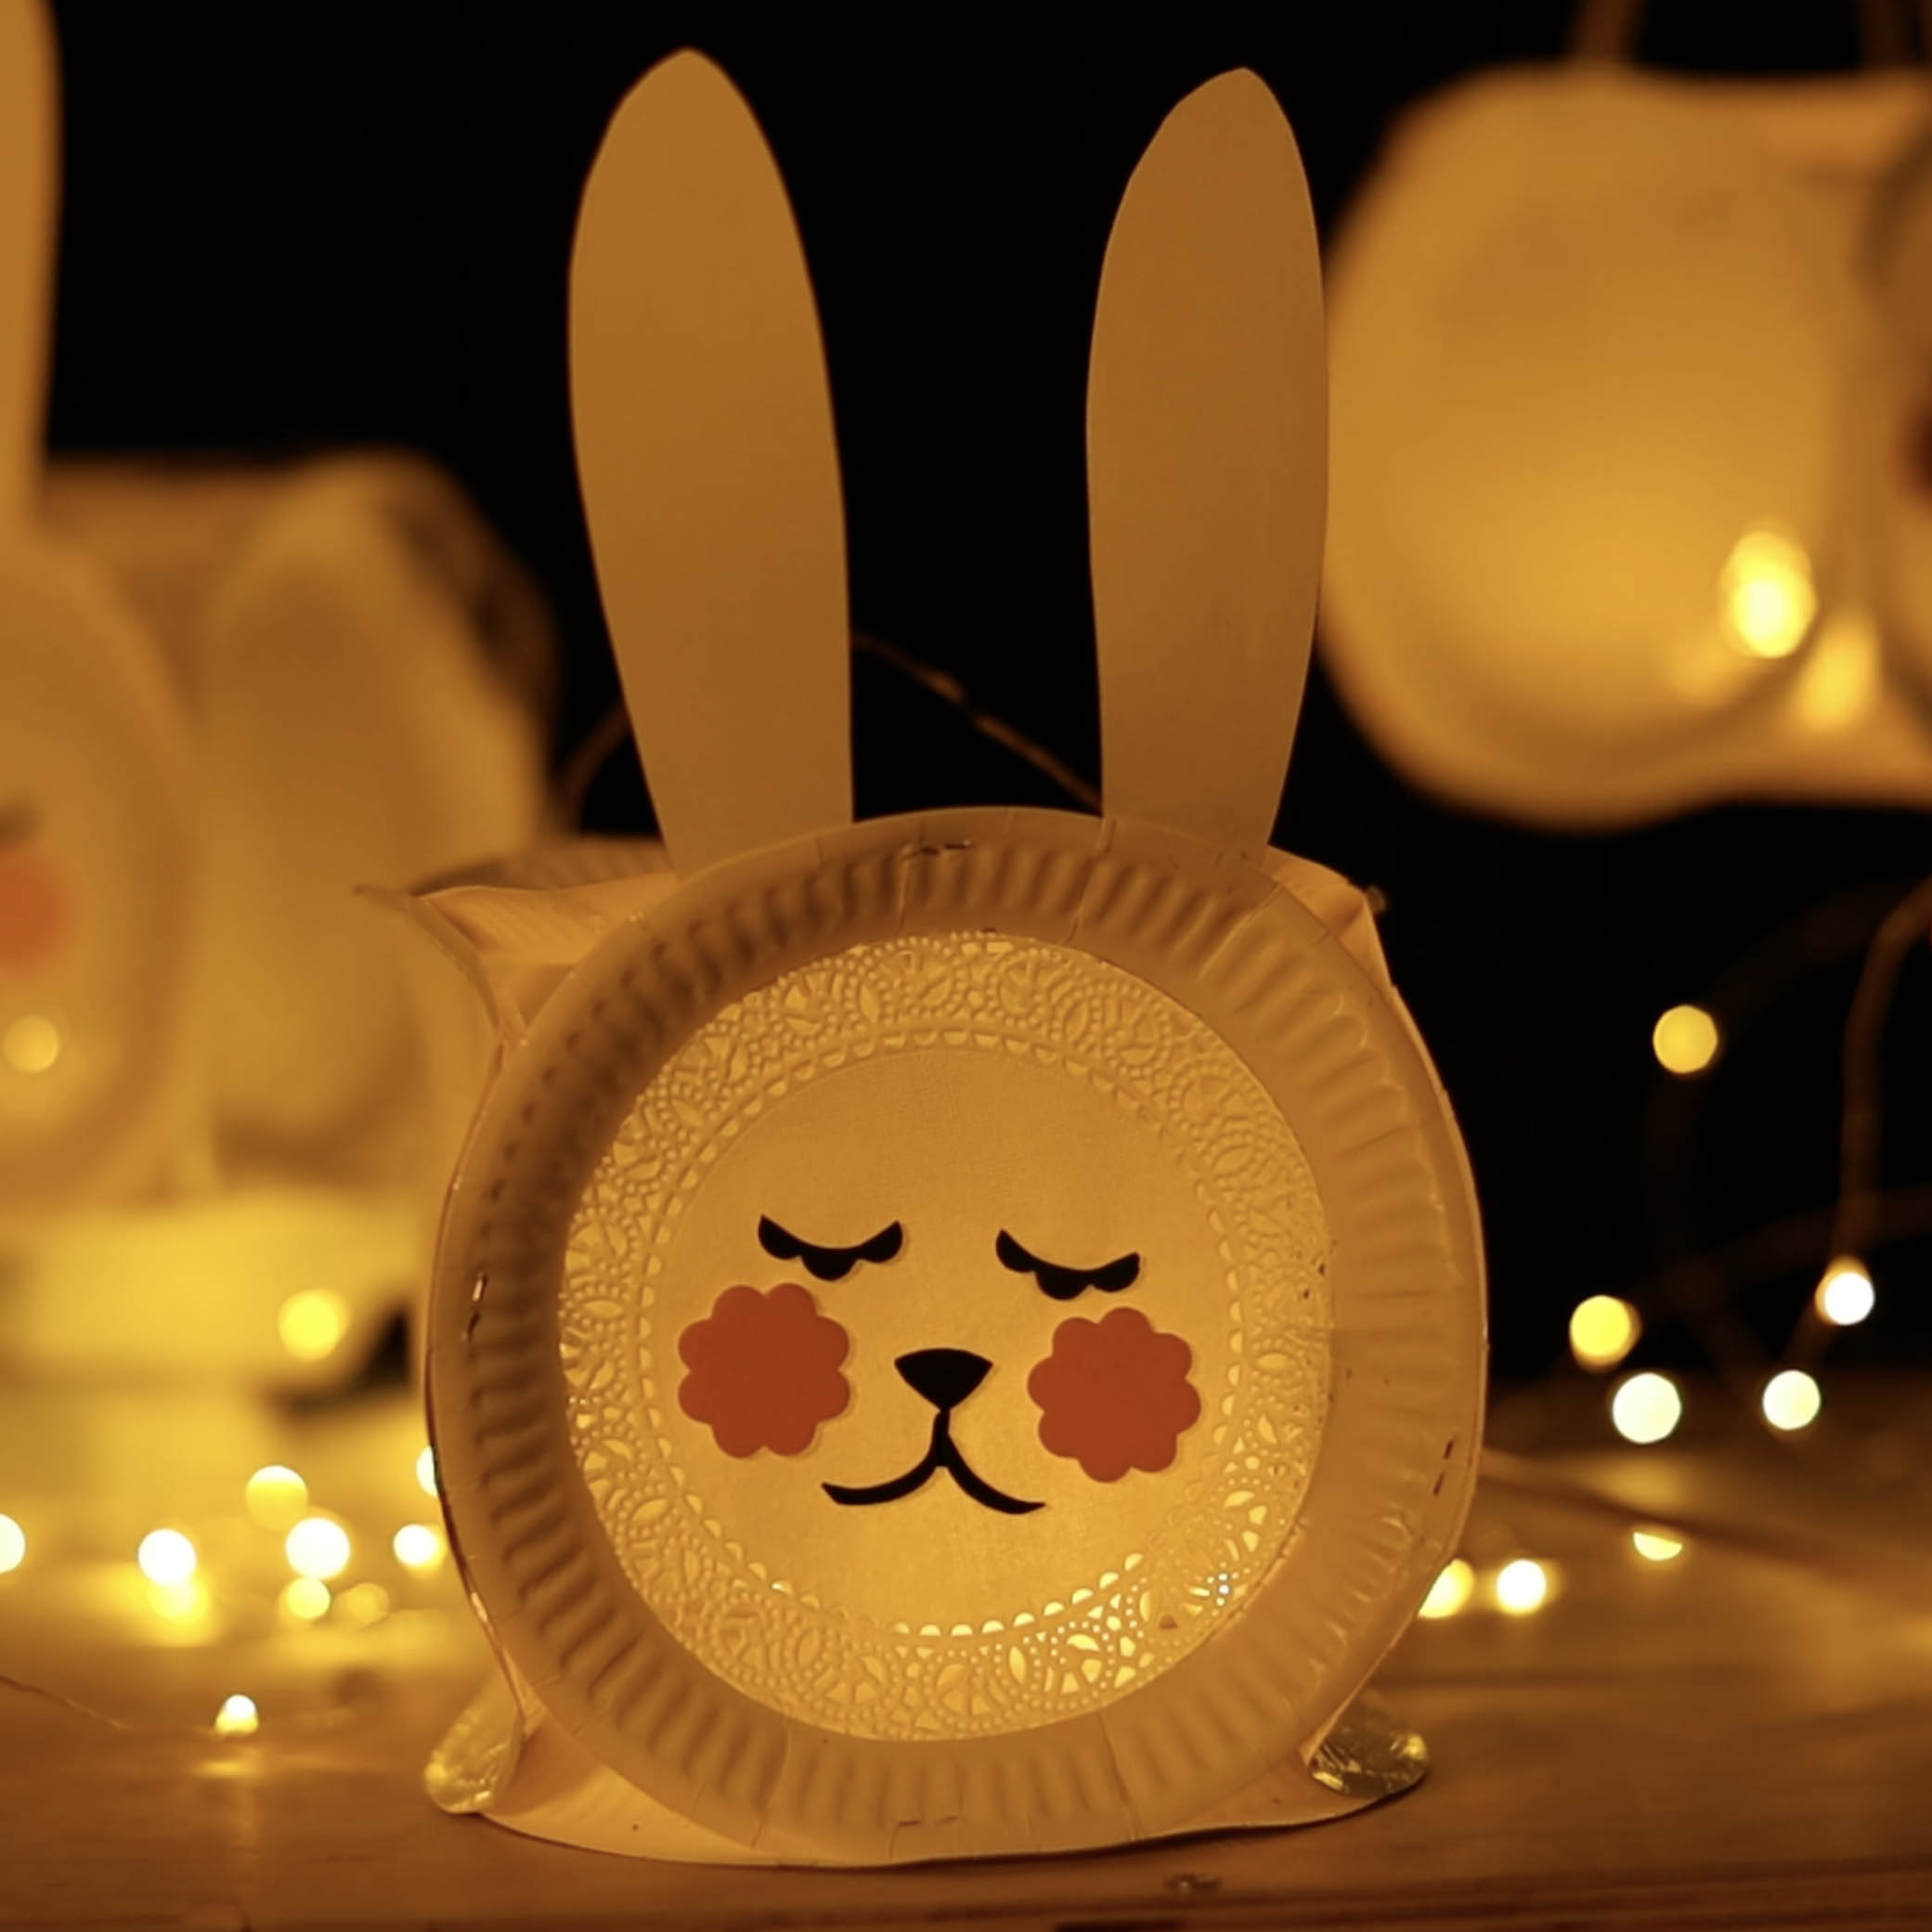 This Moon Rabbit Lantern Is The Perfect Mid-Autumn Festival Craft